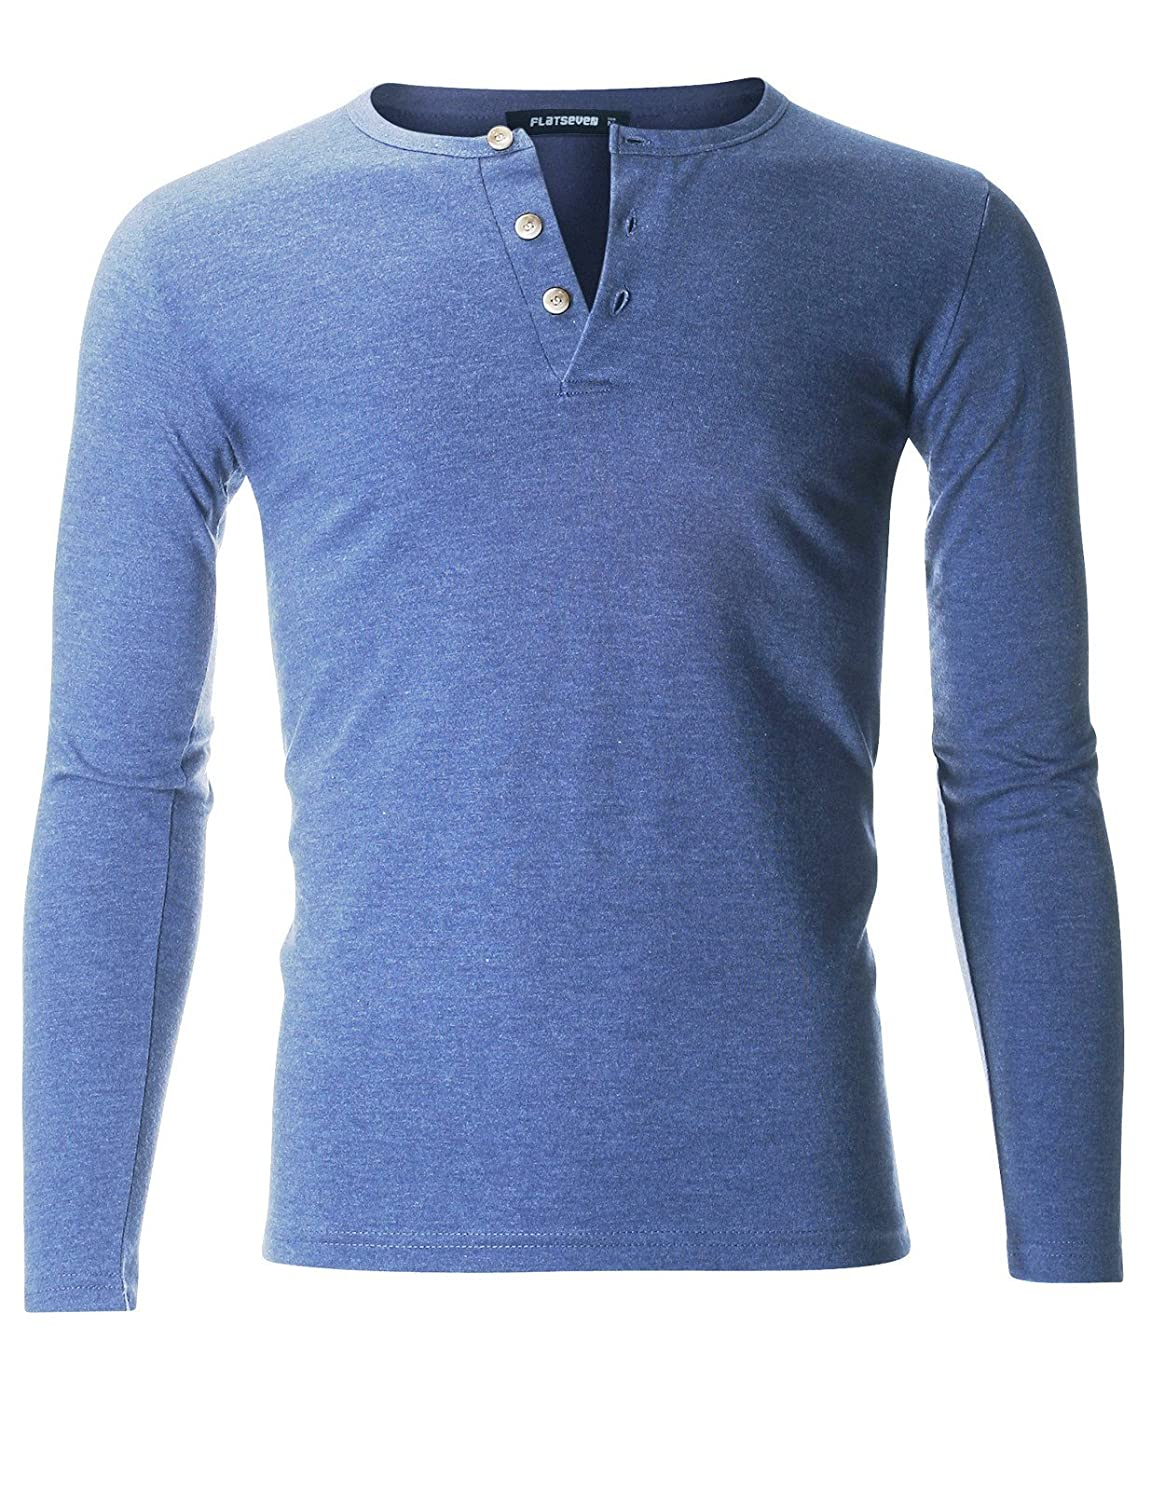 FLATSEVEN Men's Casual Henley Shirt with Button